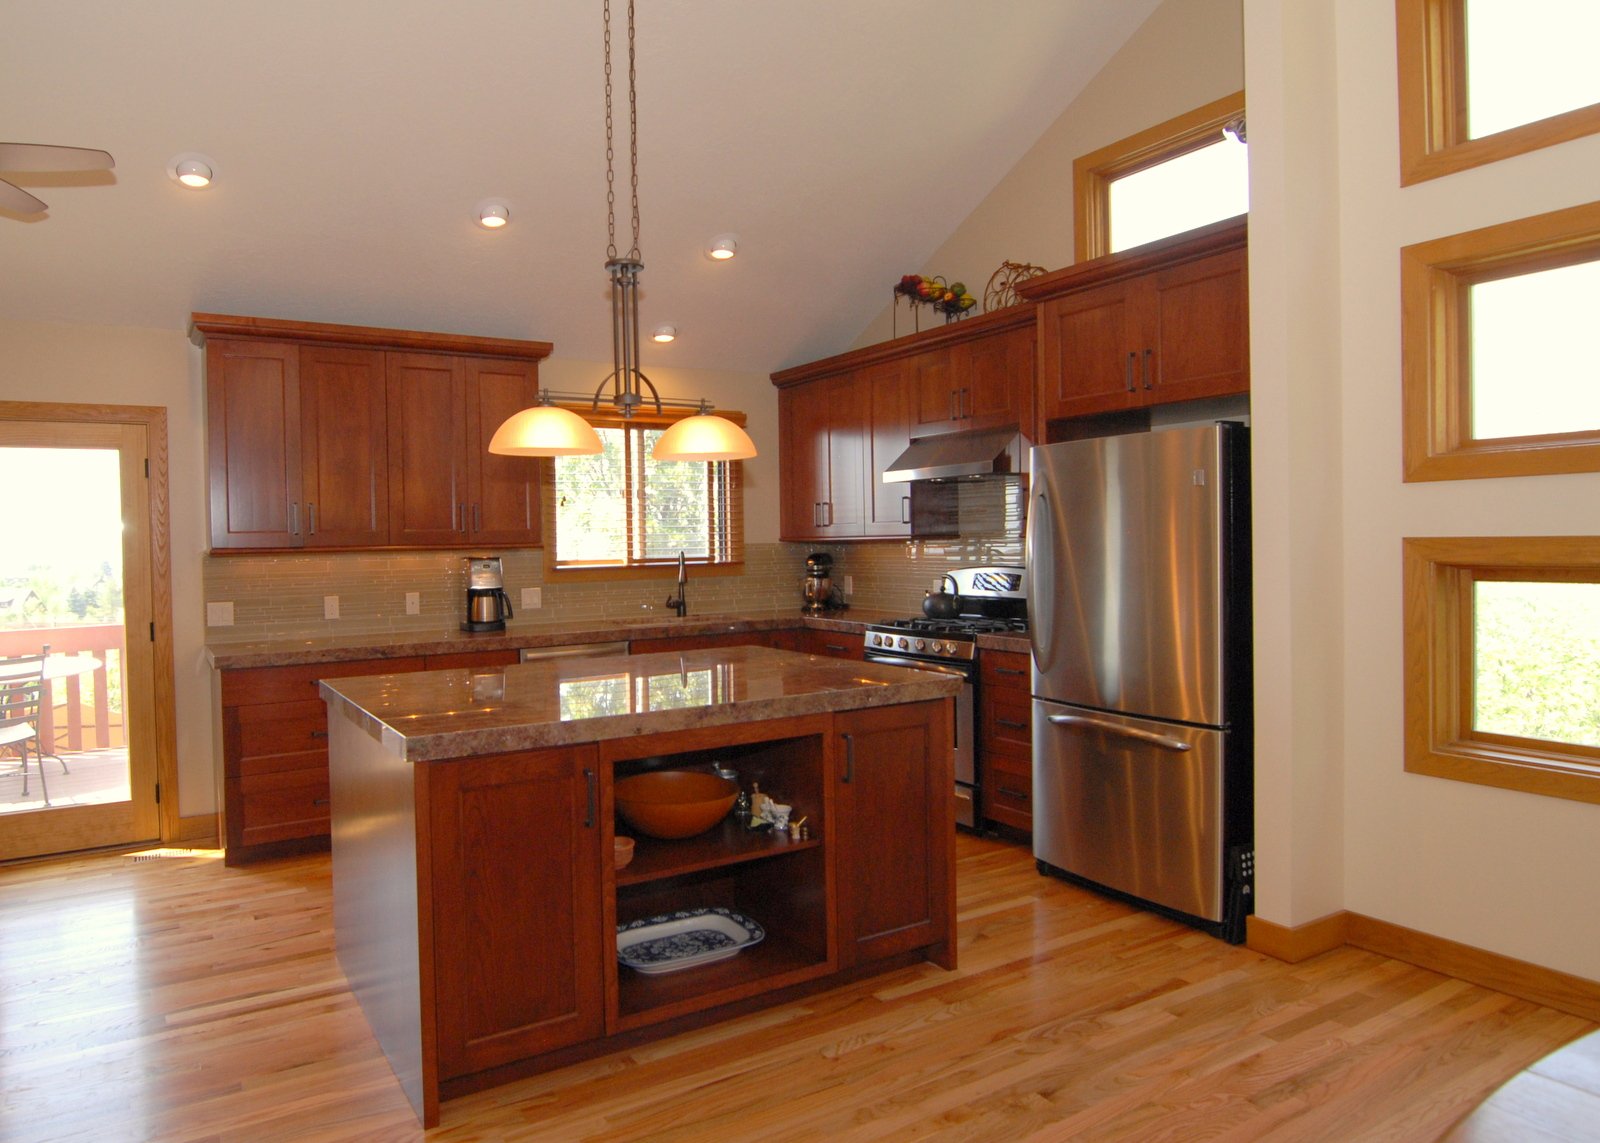 enzy living Recent Kitchen Remodel  Before  After